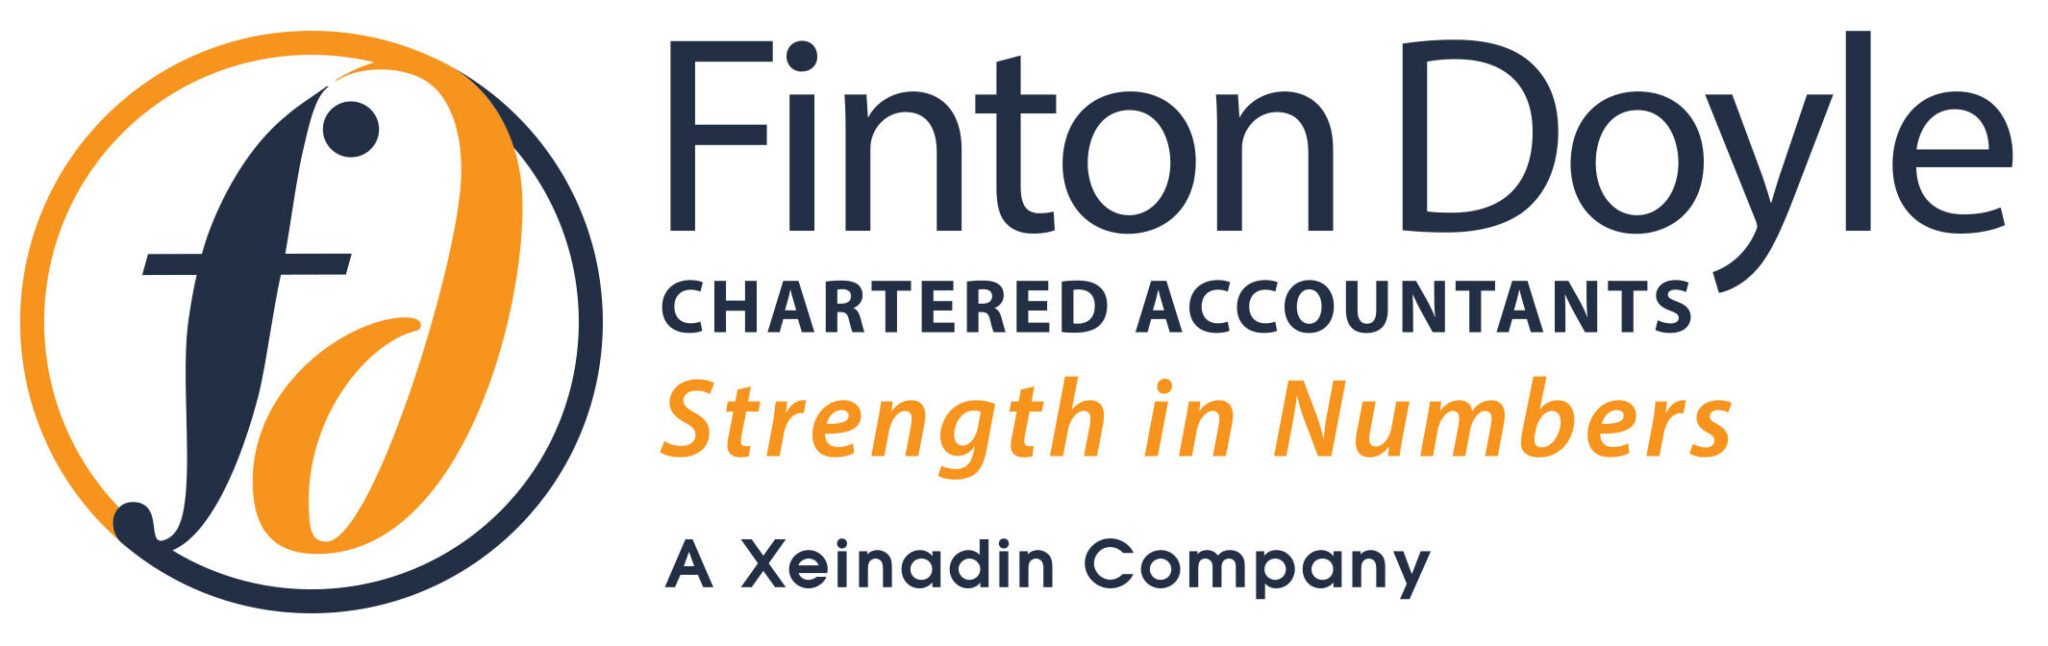 Finton Doyle Chartered Accountants